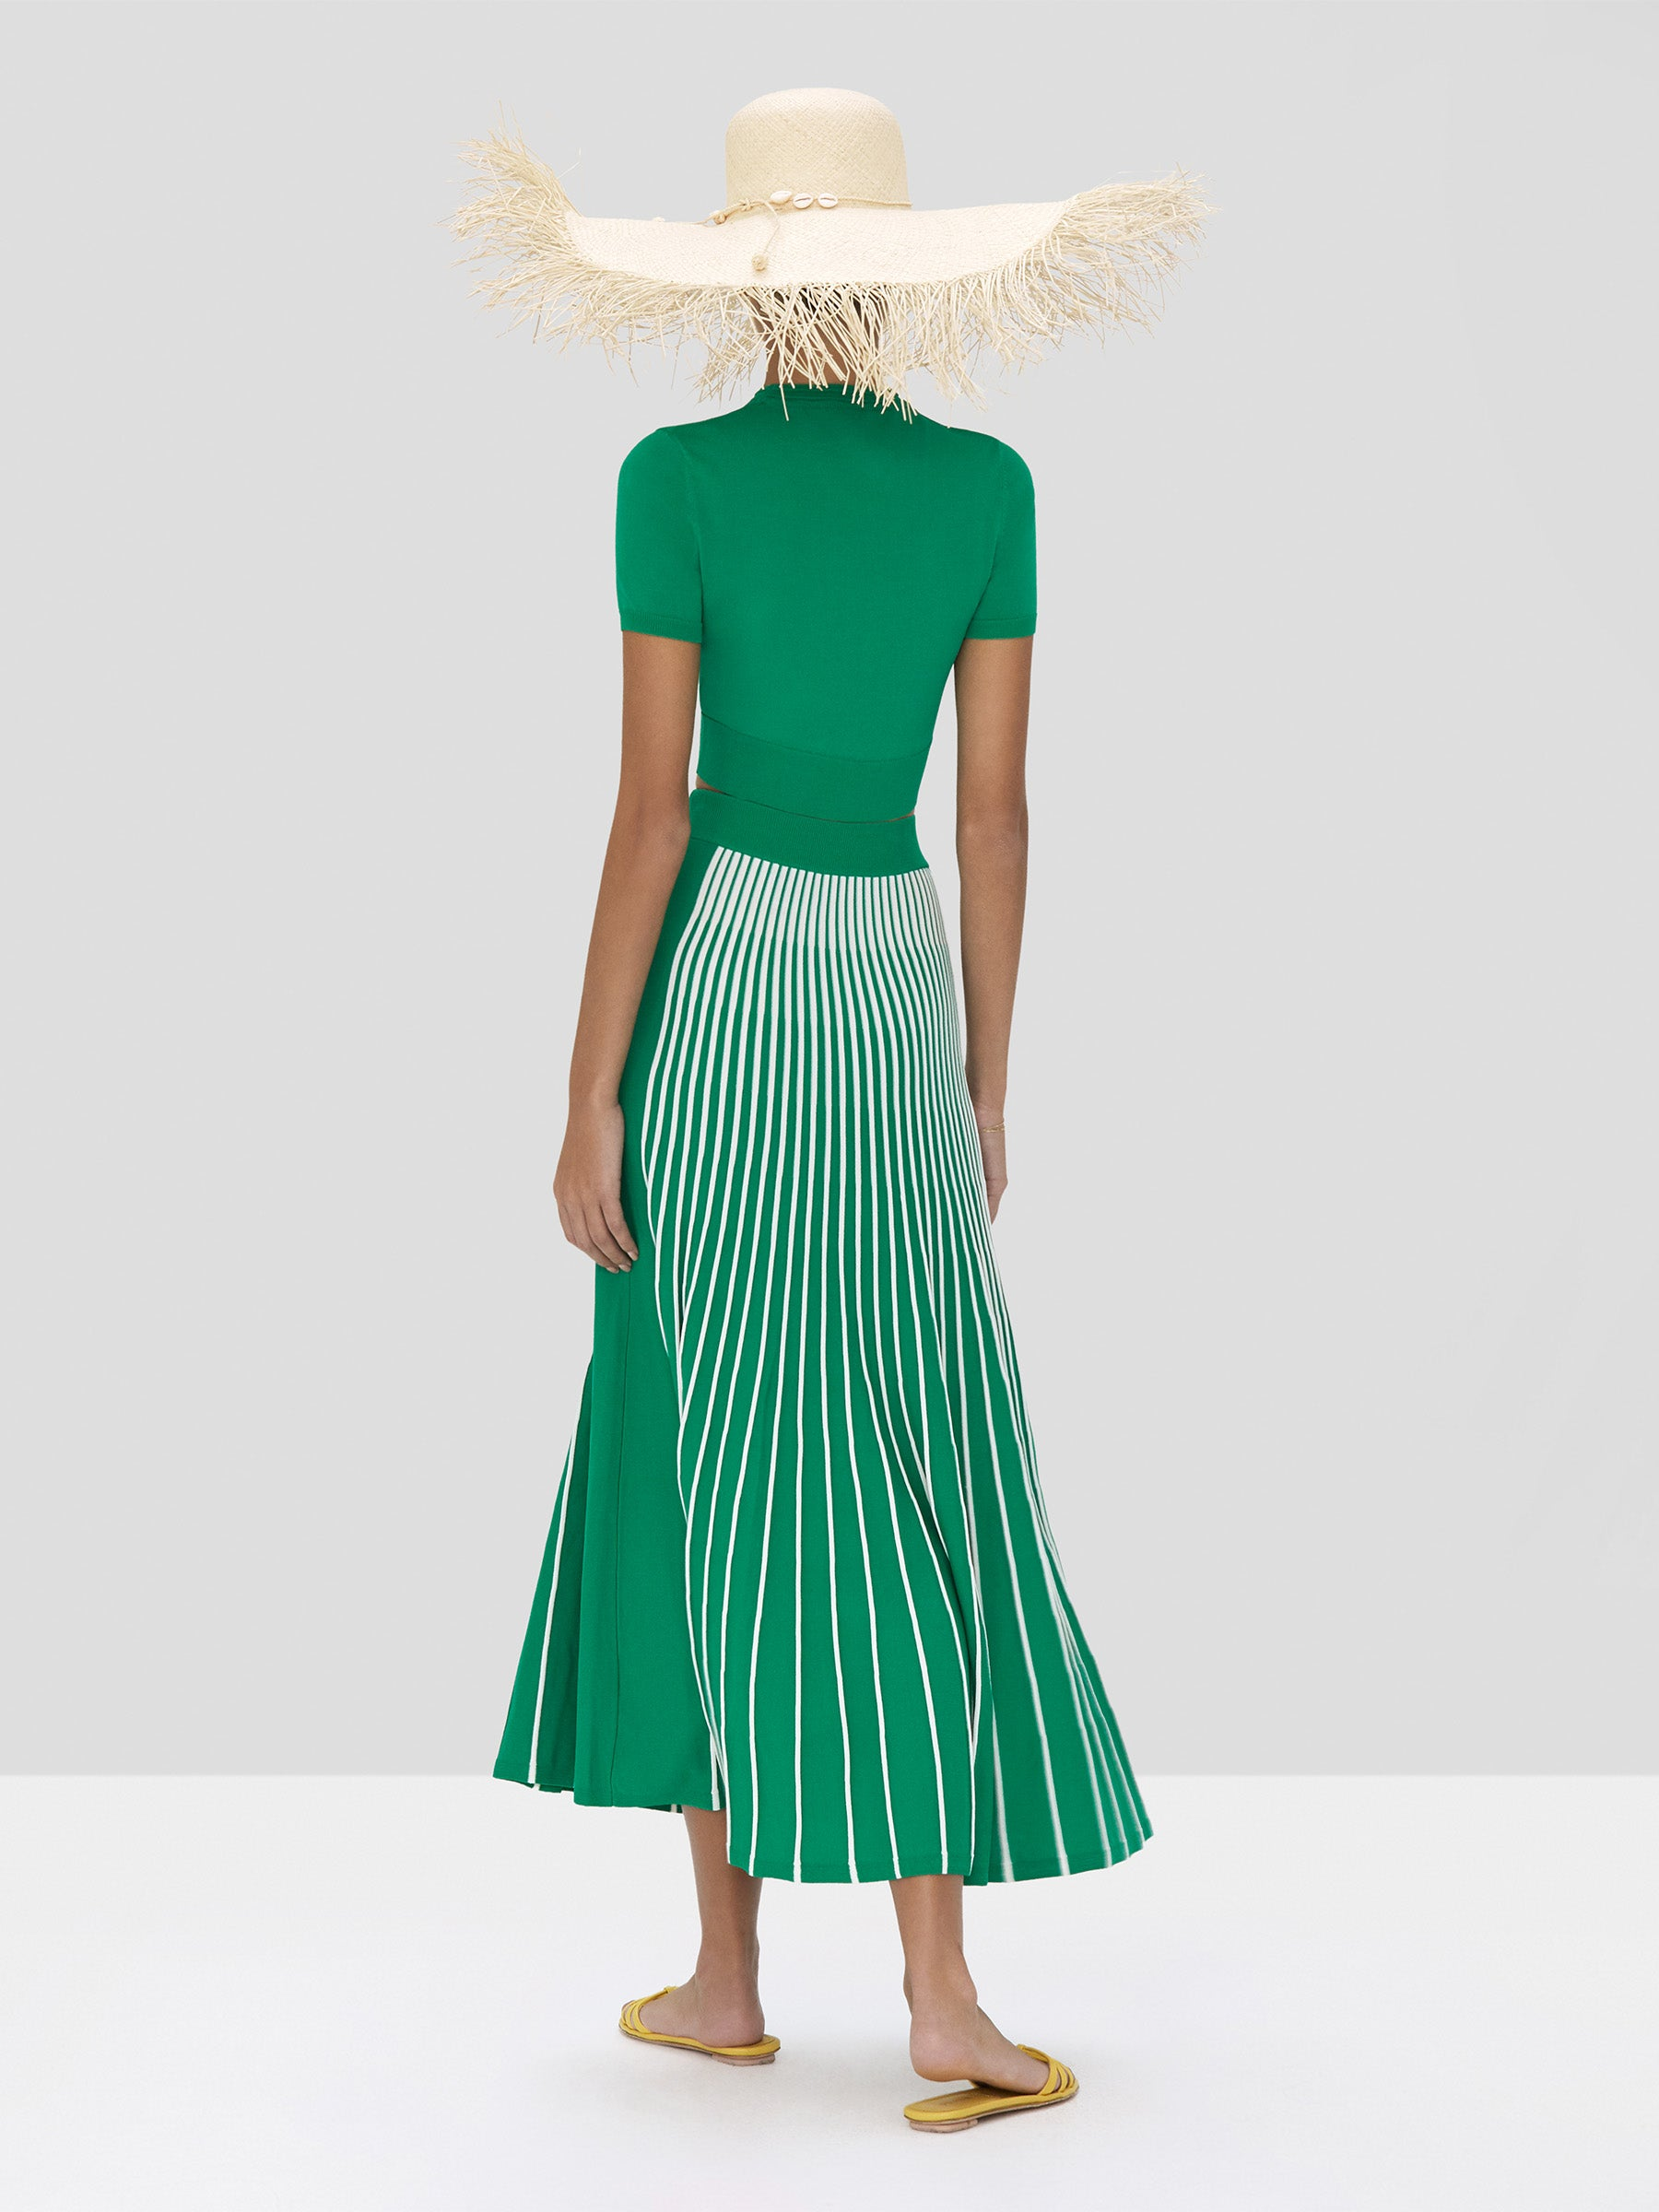 Alexis Vani Skirt in Green and White Stripes and Finzi Crop Top in Green from Spring Summer 2020  - Rear View